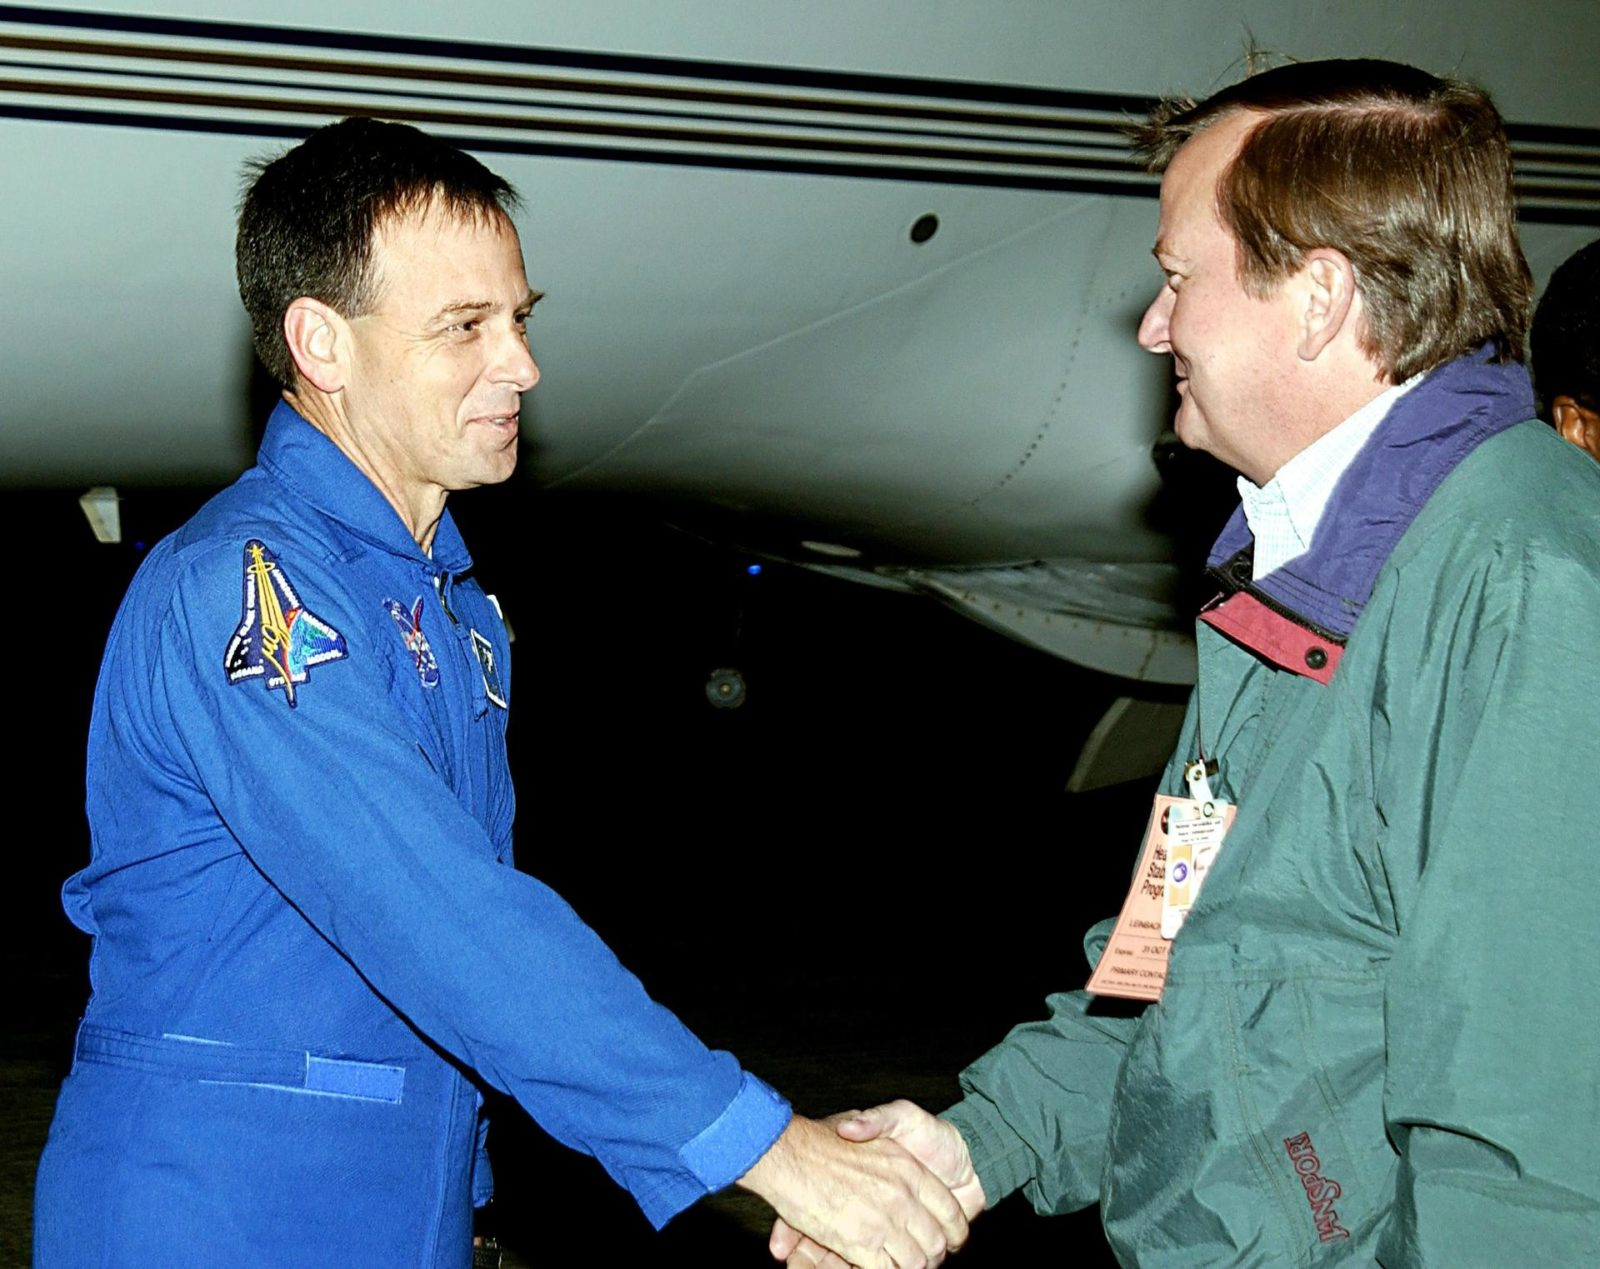 "KENNEDY SPACE CENTER, FLA. --  STS-107 Payload Specialist Ilan Ramon (left) is greeted on his arrival by Launch Director Mike Linebach.  Ramon is the first Israeli astronaut to fly on a Shuttle mission. STS-107 is a mission devoted to research and will include more than 80 experiments that will study Earth and space science, advanced technology development, and astronaut health and safety. The payload on Space Shuttle Columbia includes FREESTAR (Fast Reaction Experiments Enabling Science, Technology, Applications and Research) and the SHI Research Double Module (SHI/RDM), known as SPACEHAB.  Experiments on the module range from material sciences to life sciences.  Other crew members are Commander Rick Husband, Pilot William ""Willie"" McCool, Payload Commander Michael Anderson and Mission Specialists Kalpana Chawla, David Brown and Laurel Clark.  Launch of Columbia is targeted for Jan. 16 between 10 a.m. and 2 p.m. KSC-03pd0050"